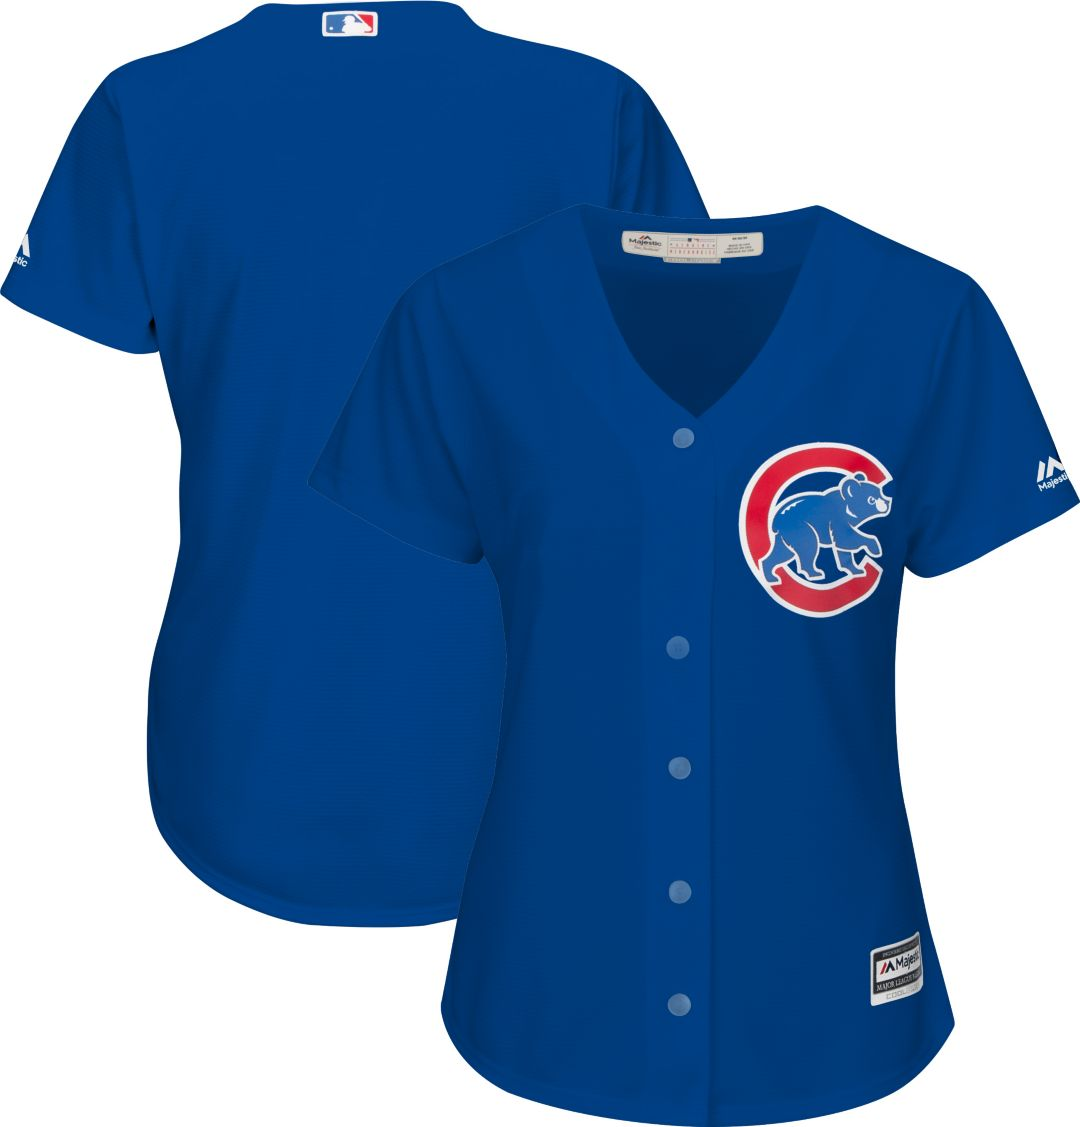 reputable site ae40e f2228 Majestic Women's Replica Chicago Cubs Cool Base Alternate Royal Jersey